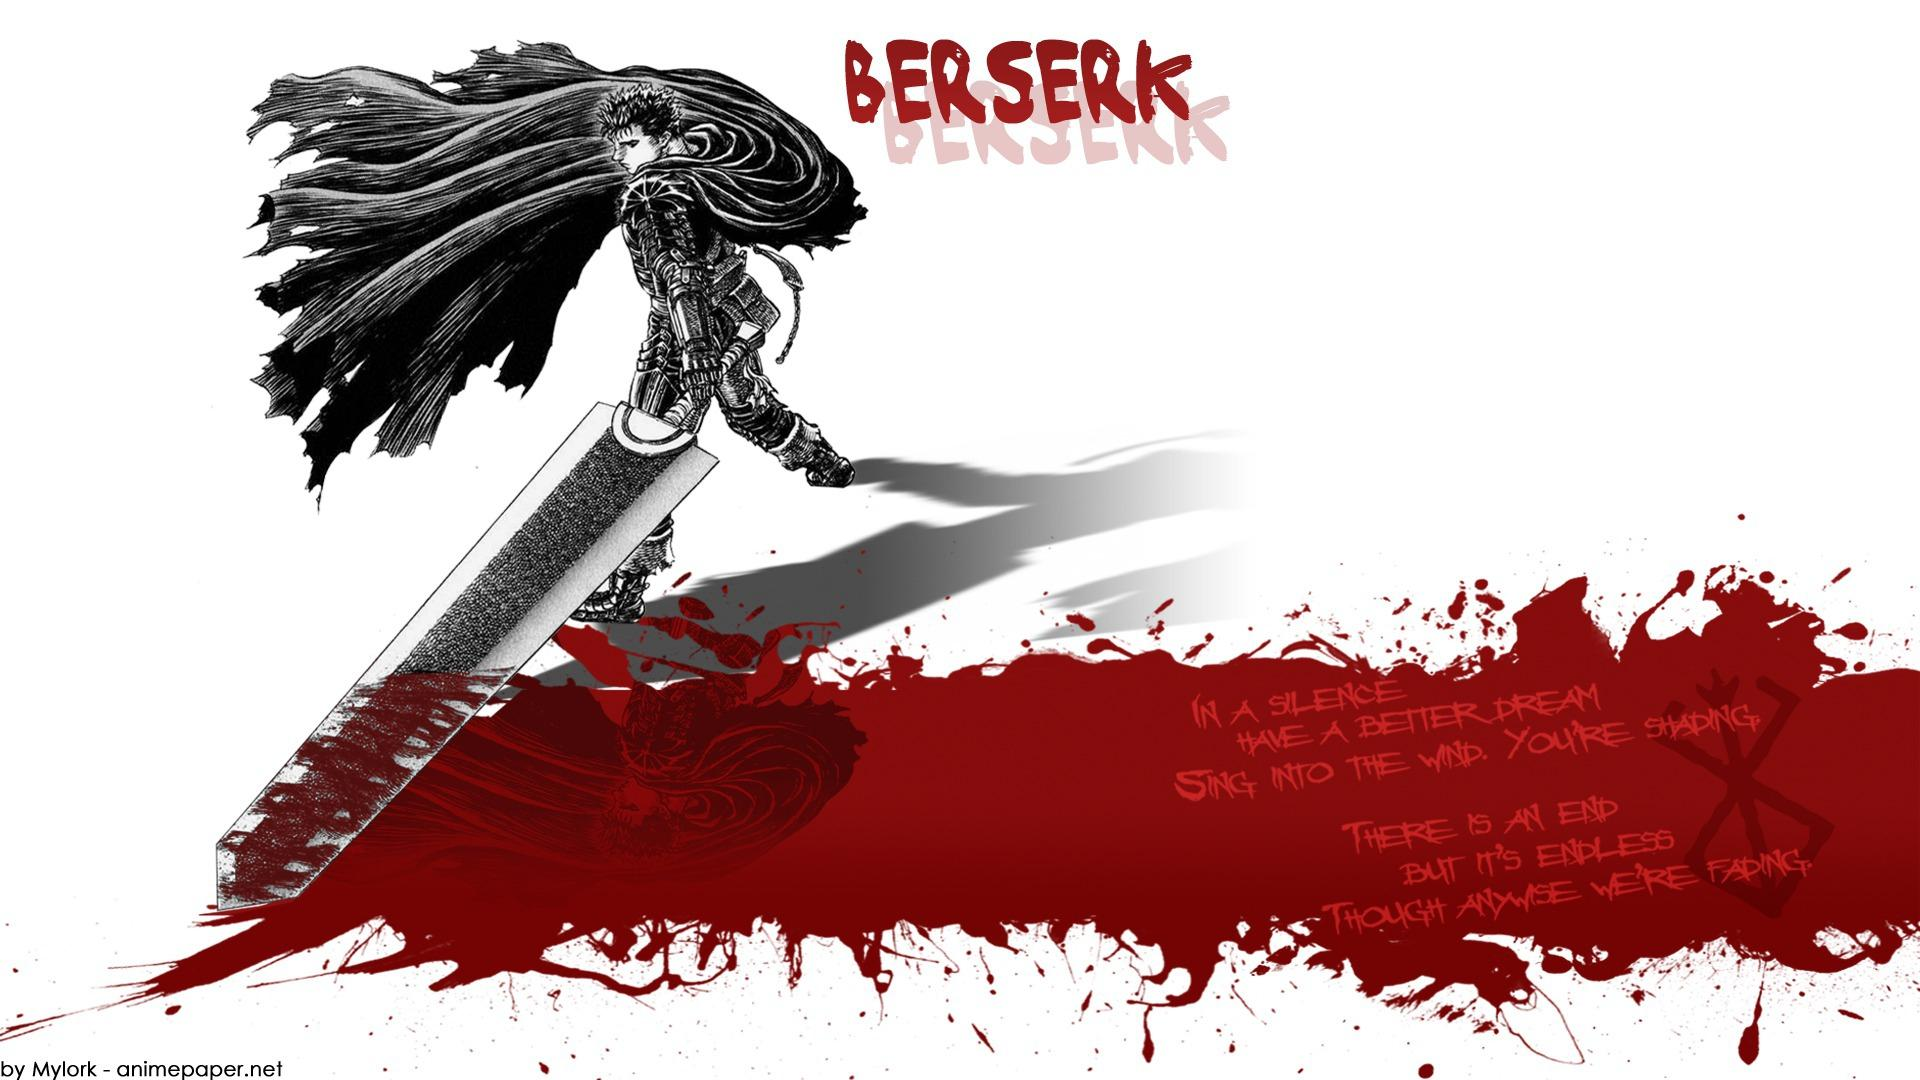 berserk wallpapers free download - photo #14